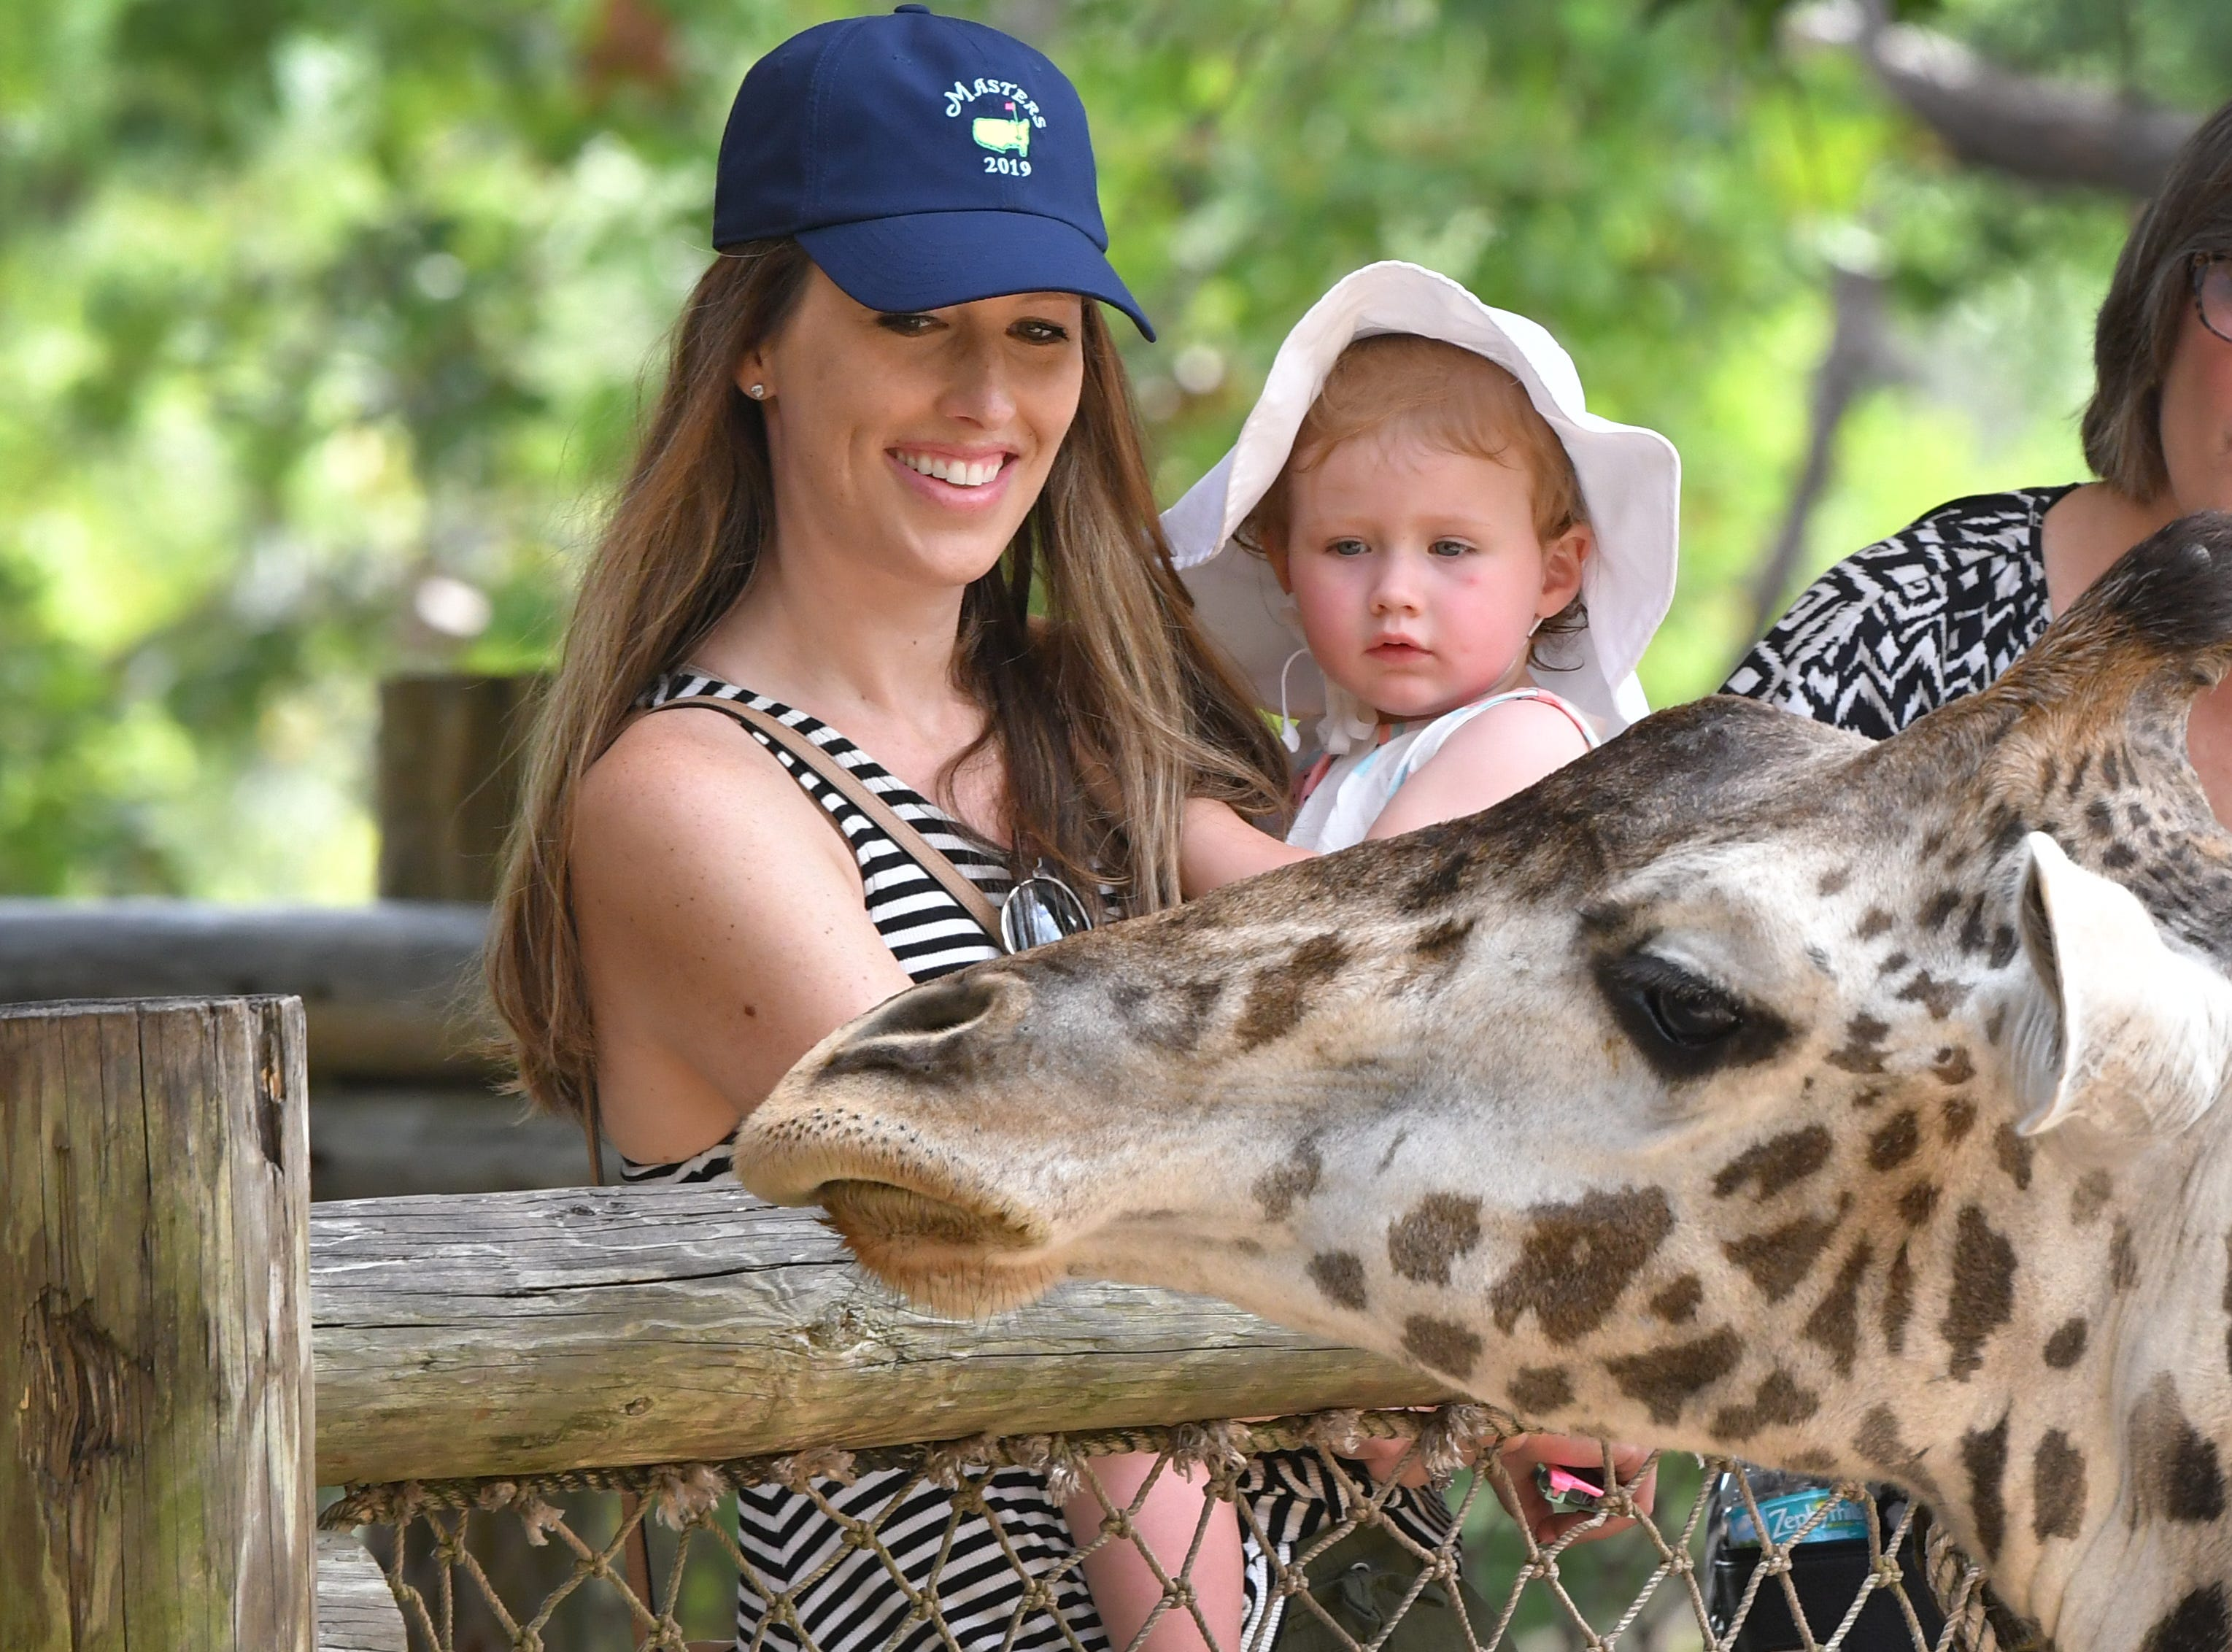 Visiting from Atlanta, Georgia and meeting the giraffes. Ashton Lindberg, and her daughter Belle, 21 months.The Brevard Zoo in Viera is a popular visit for locals and tourists alike.